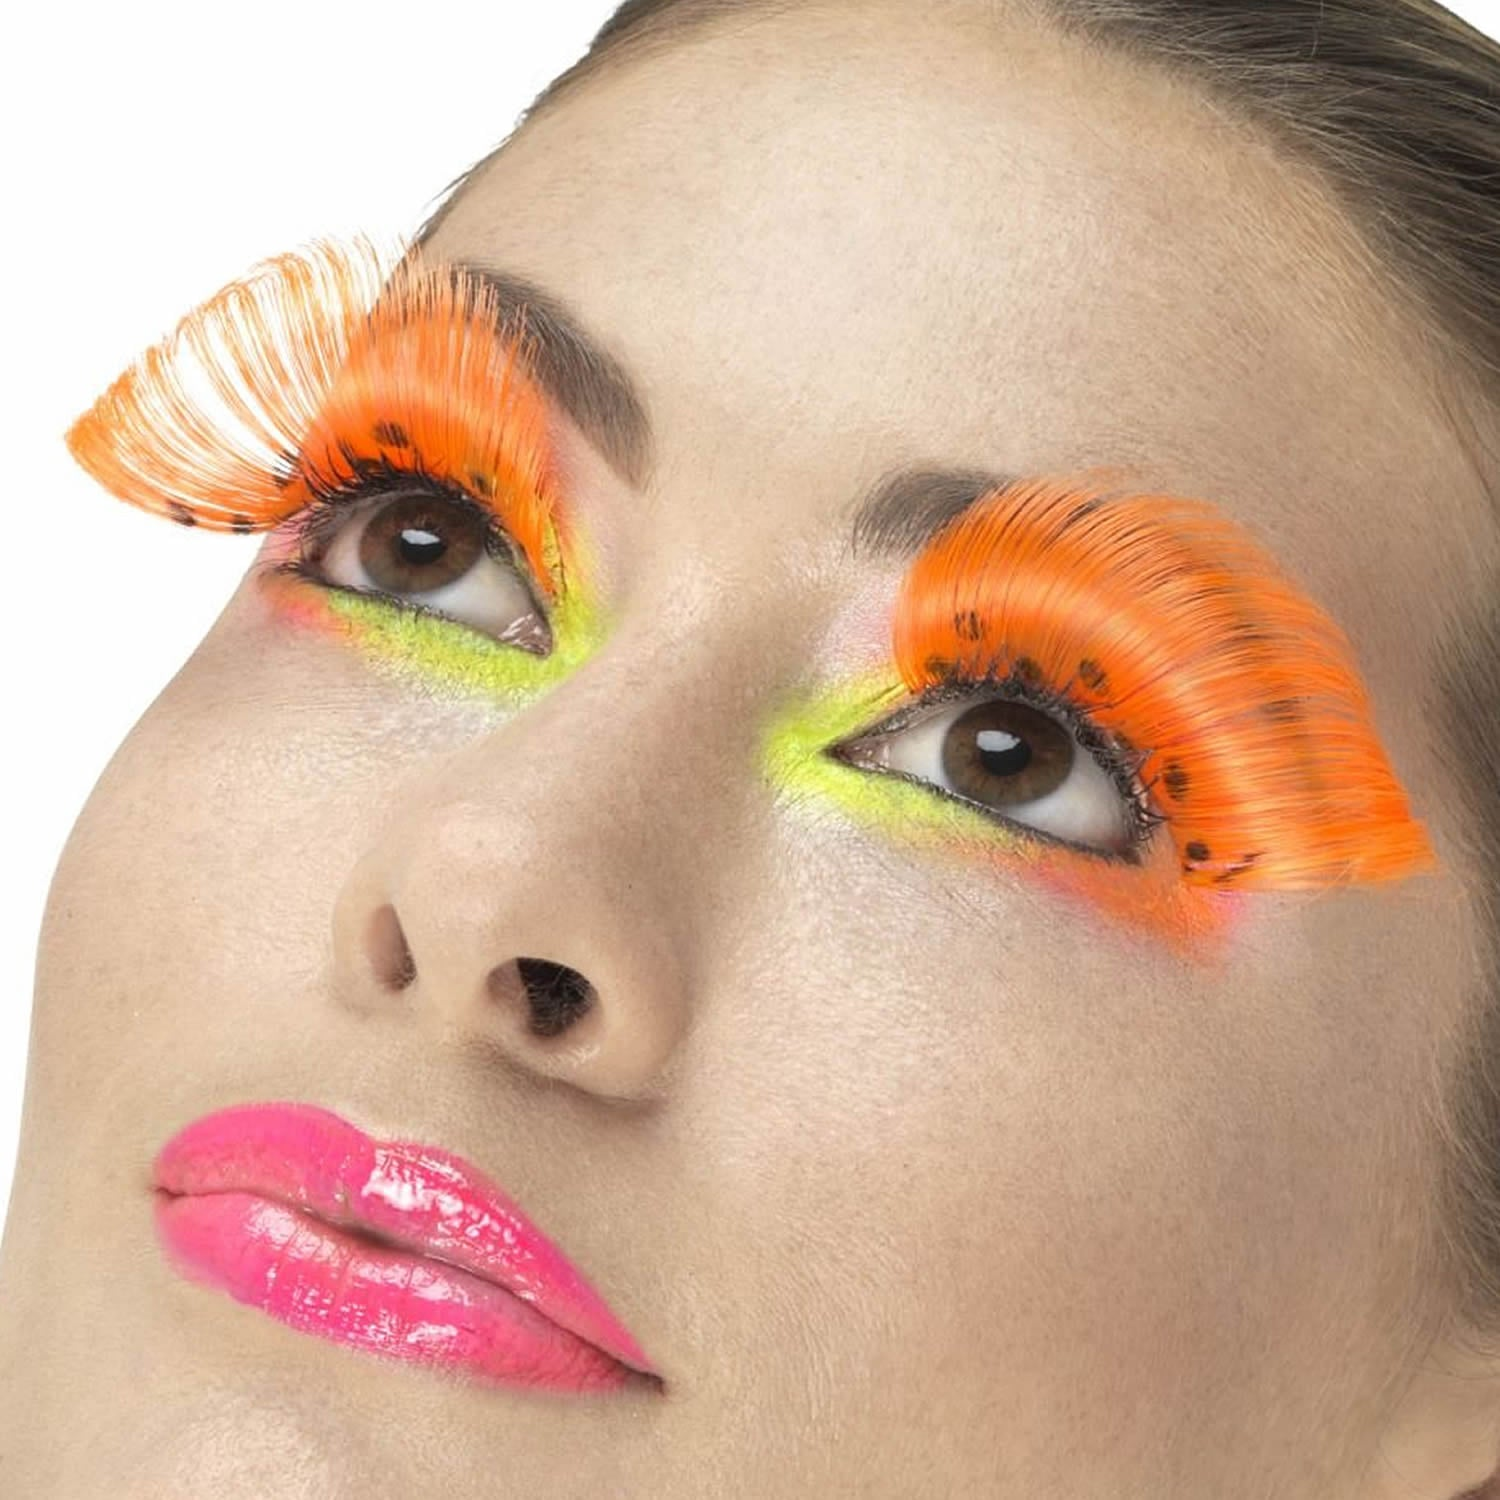 Fever False Eyelashes - 80s Polka Dot Neon Orange - Red Carpet FX - Professional Makeup